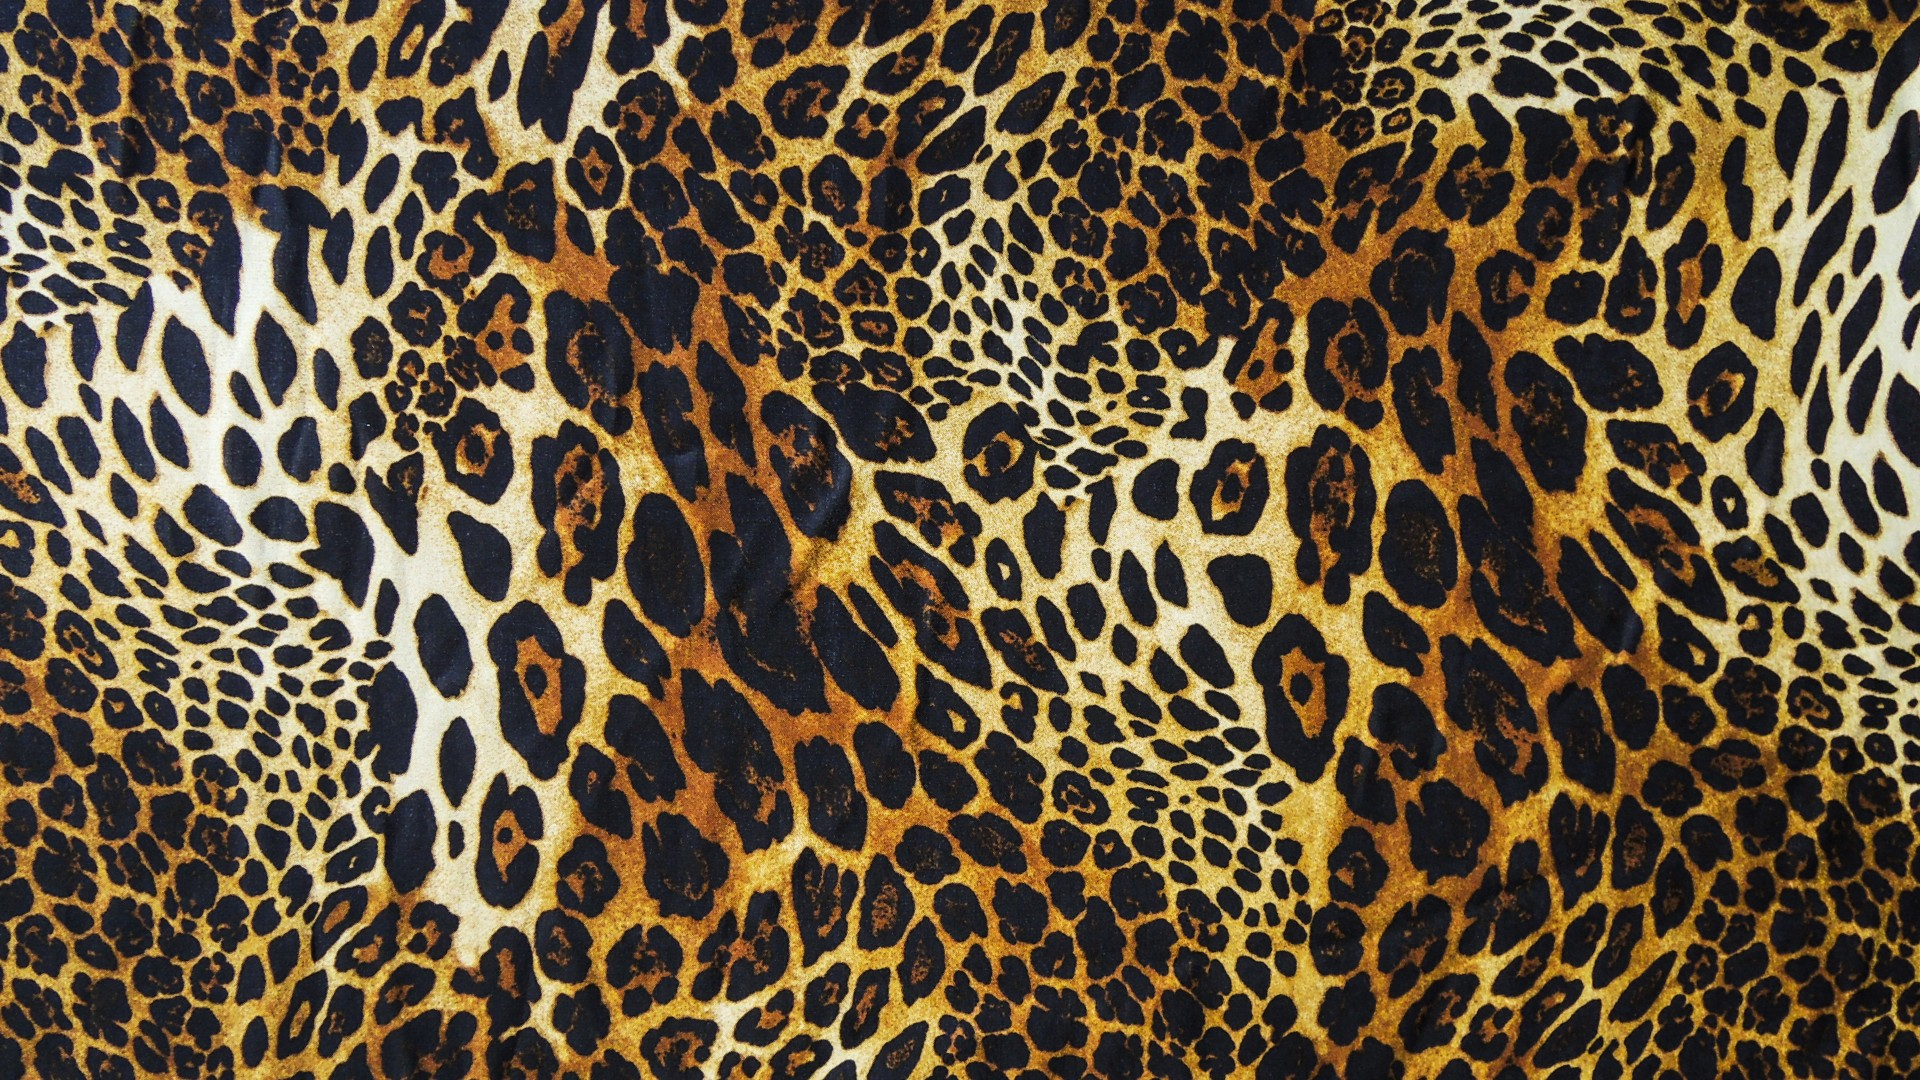 original wallpaper download: Bright leopard - 1920x1080